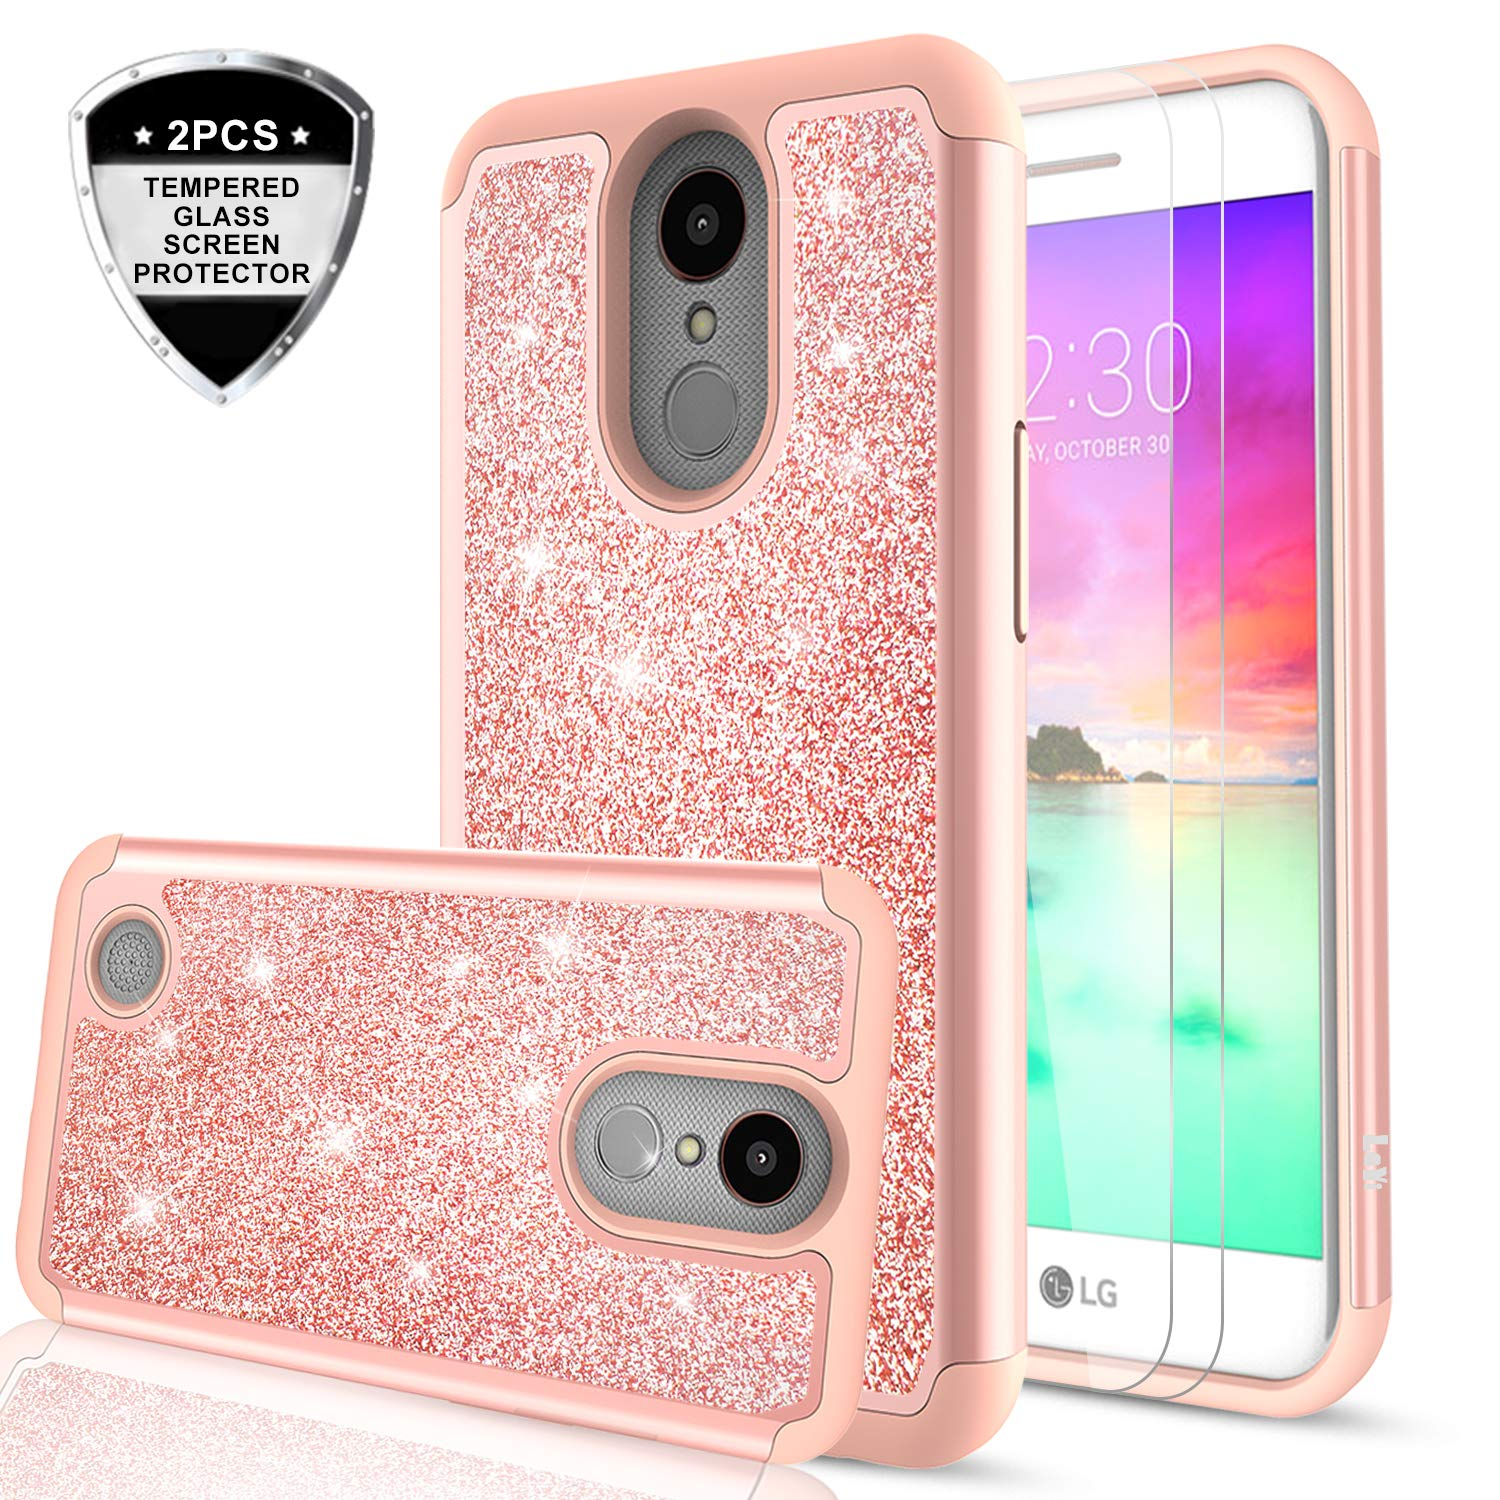 LG K20 V Case, K20/ LV5/ Plus/LG K10 2017 / Grace/Harmony Case with Tempered Glass Screen Protector, LeYi Glitter Bling Girly Women Hybrid Amazon.com: